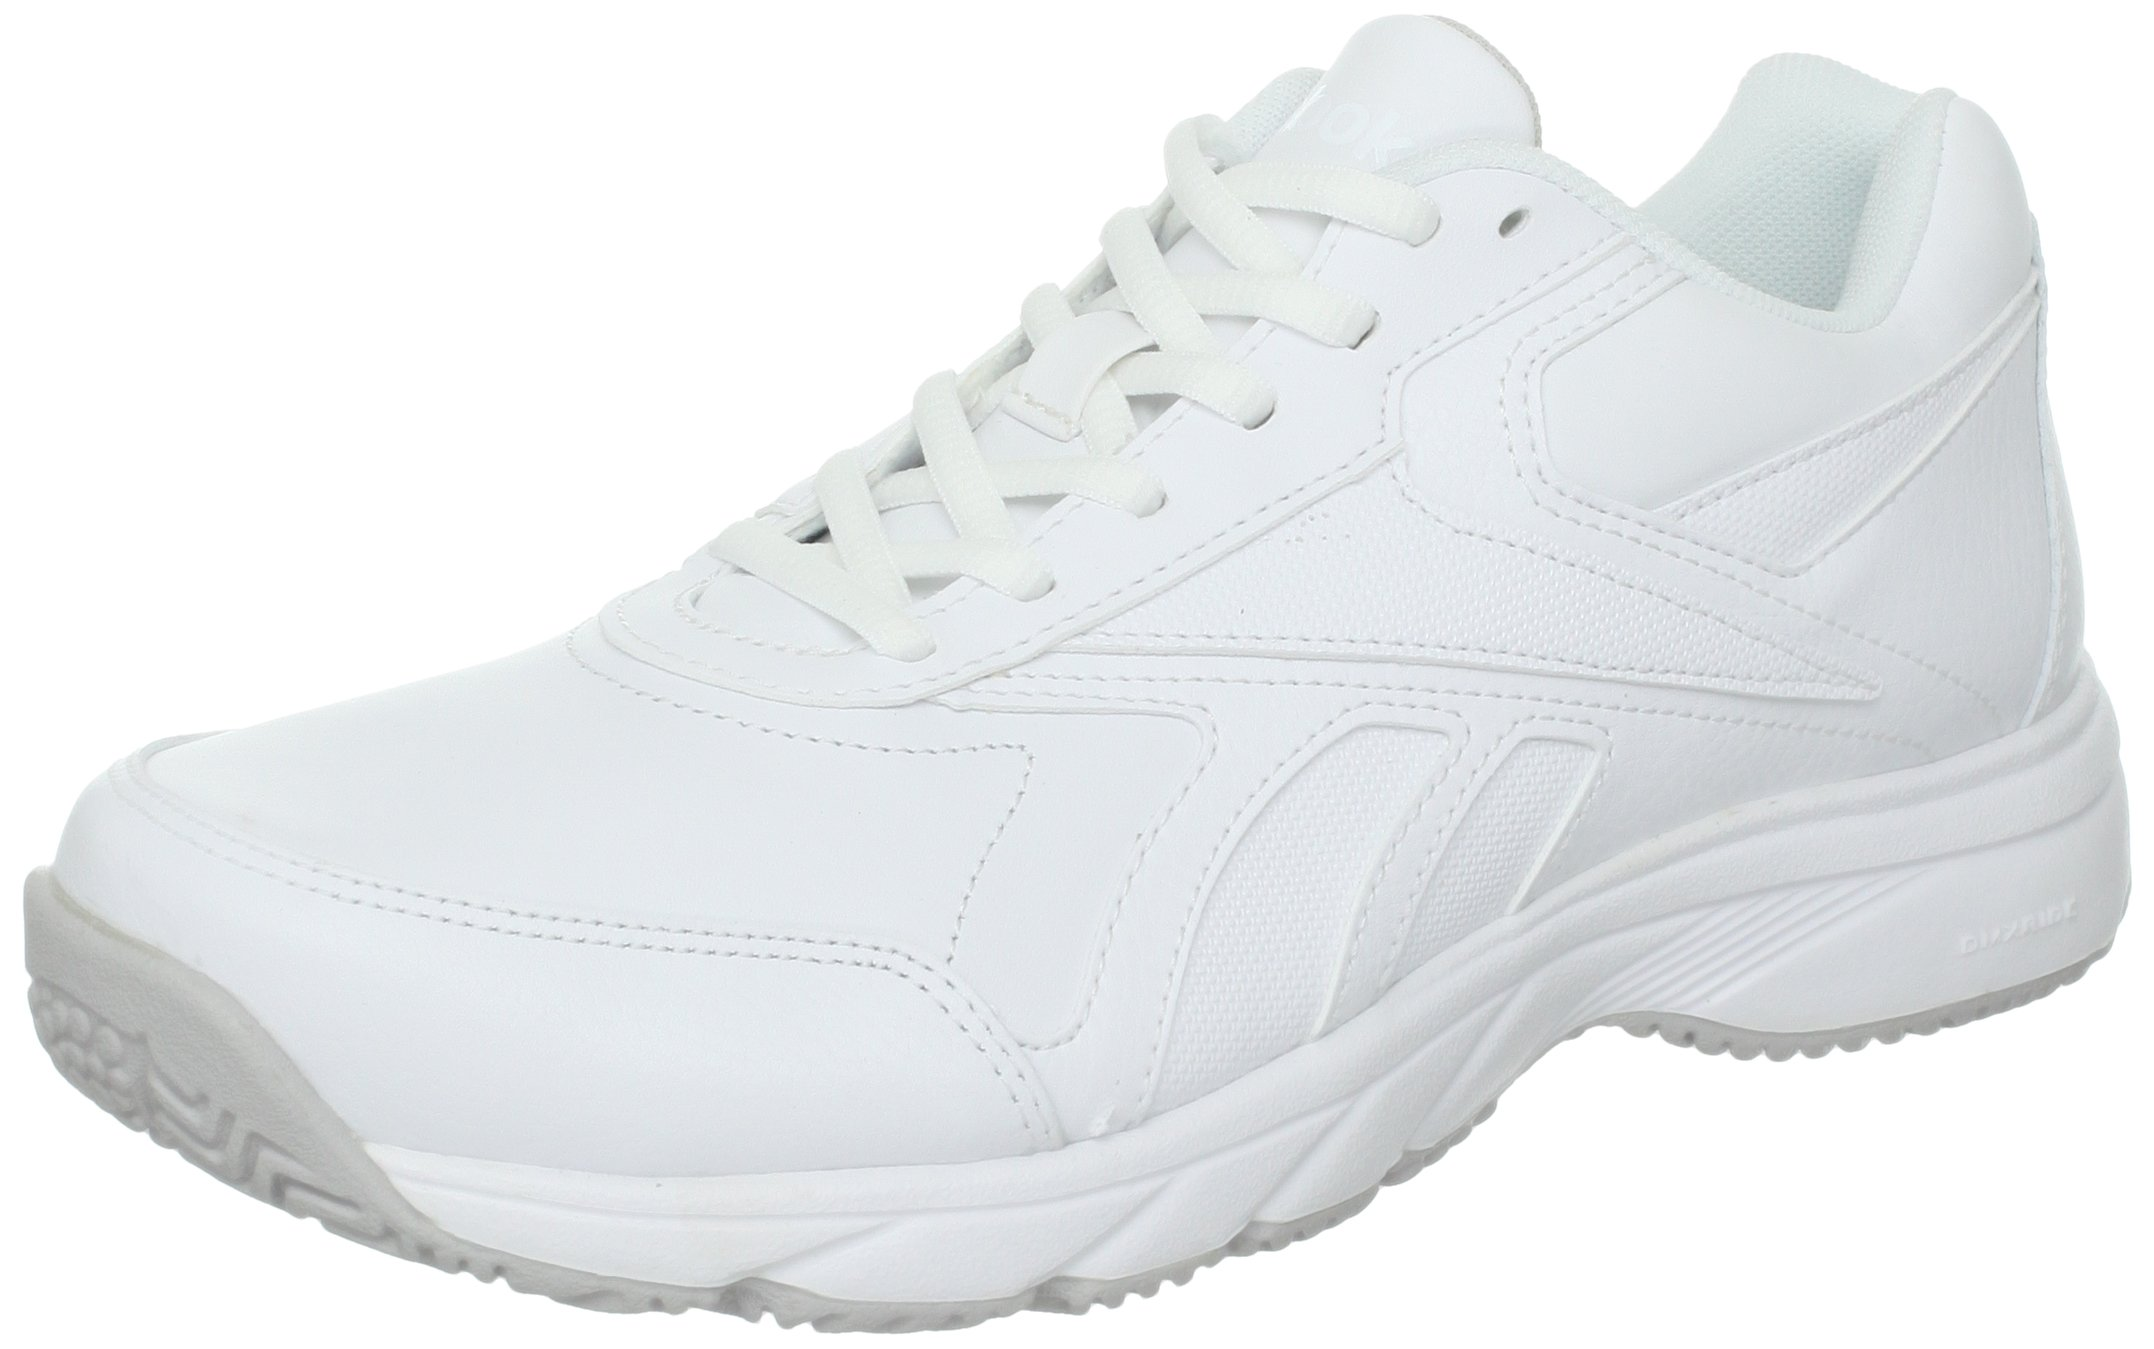 Reebok Women's Work N Cushion Walking Shoe,White,9 D US